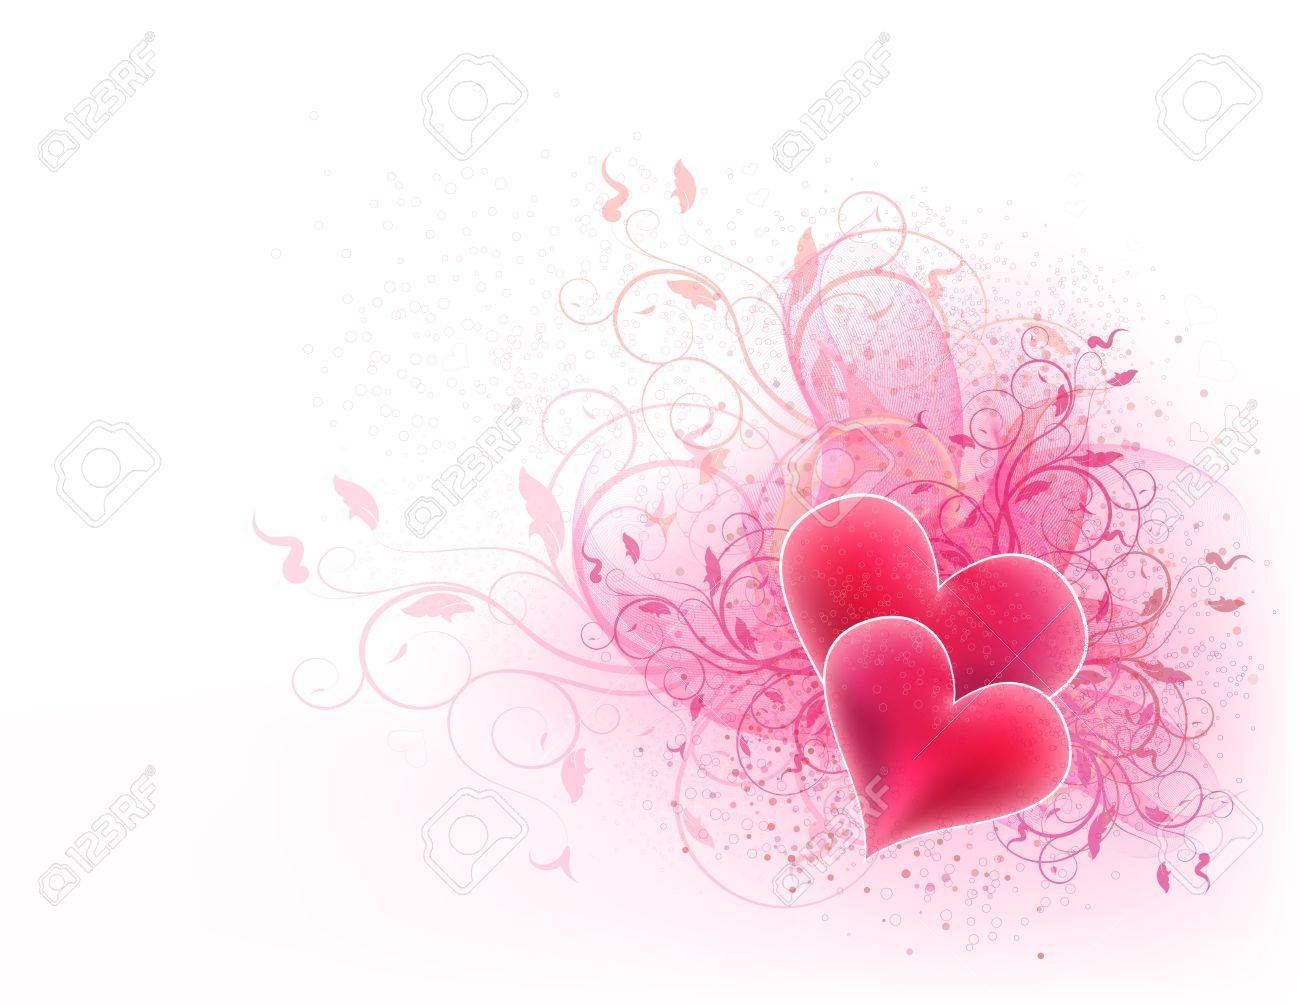 Valentines vector background with floral design and hearts - 12391270